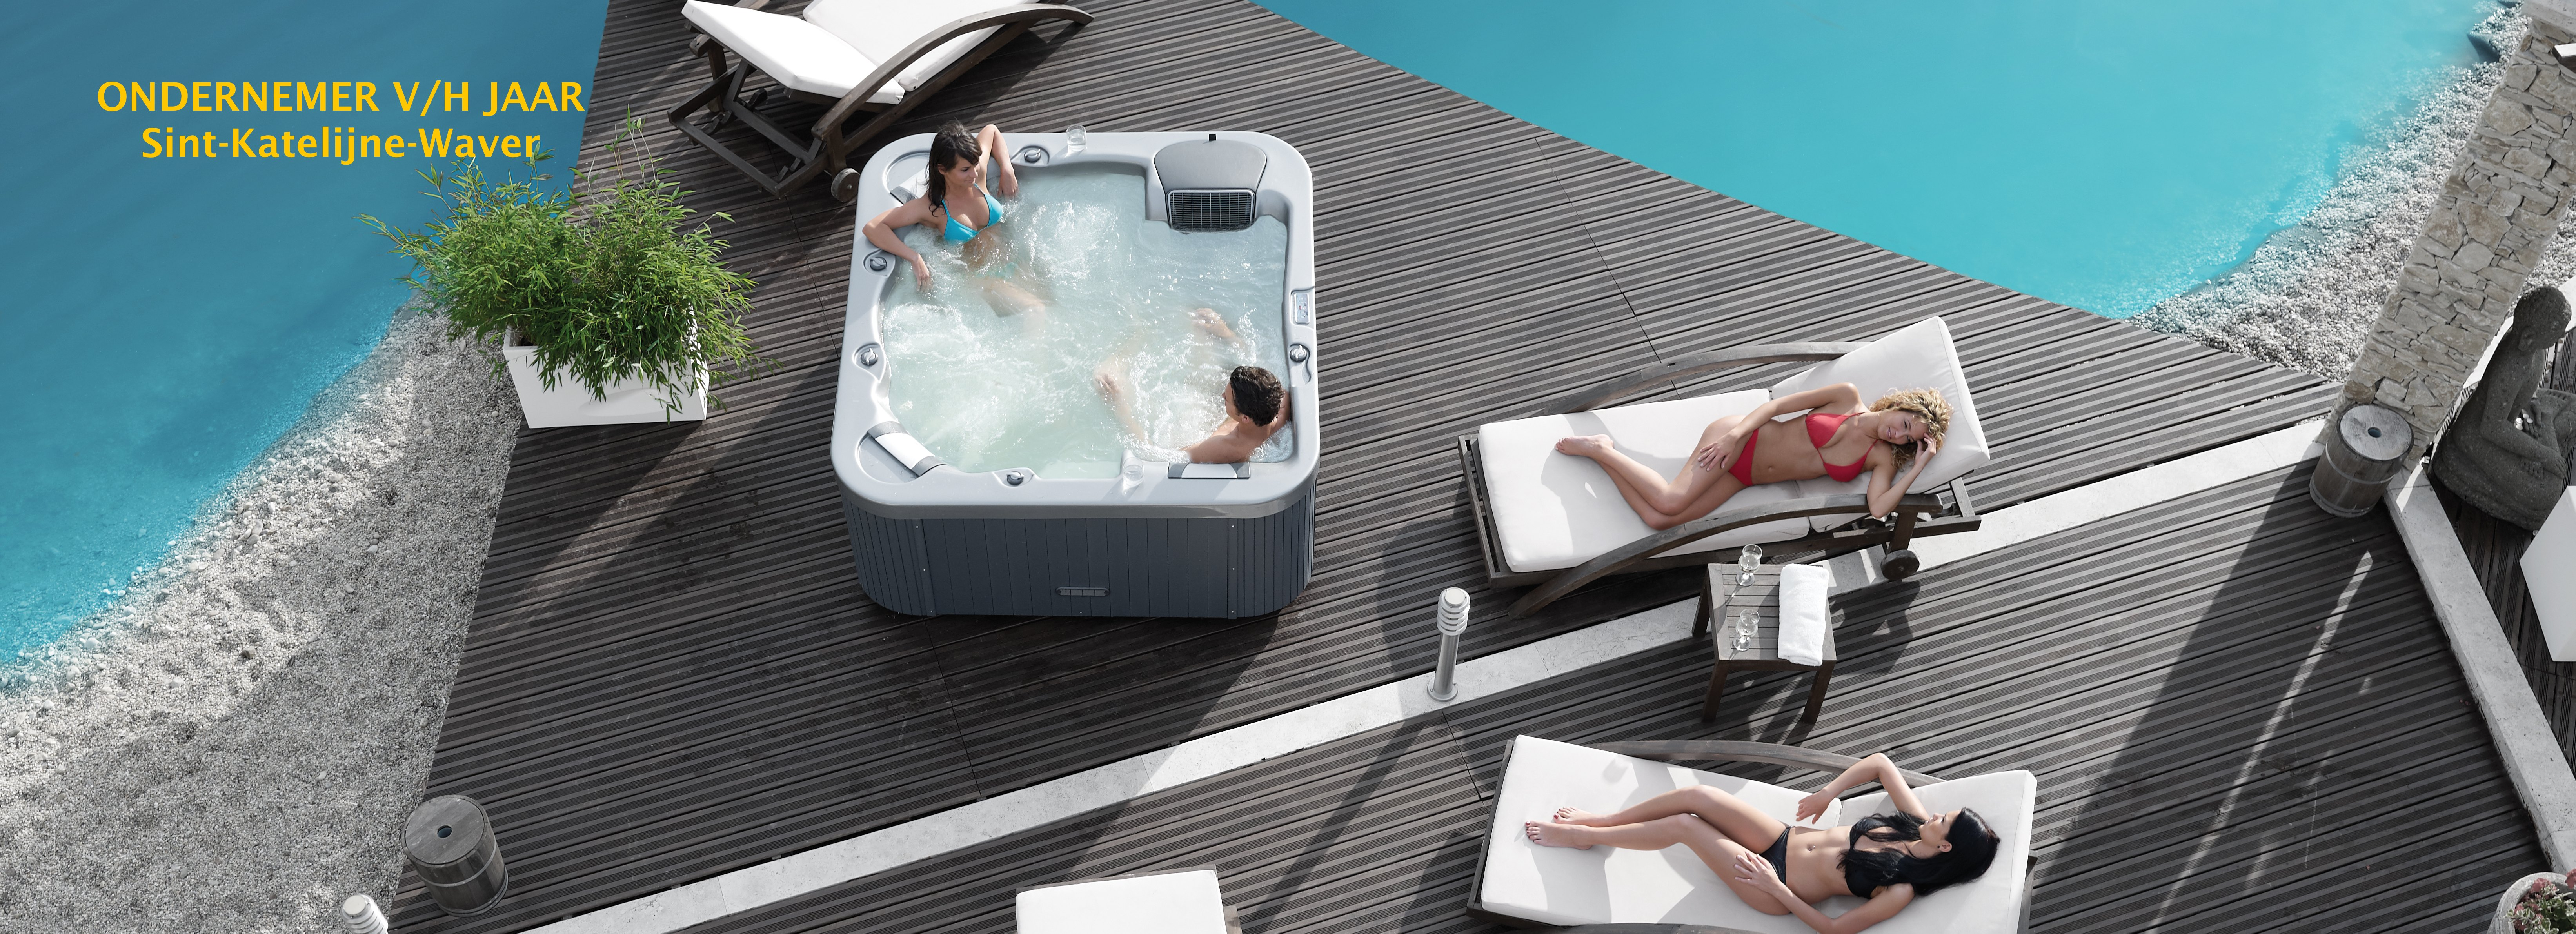 wellis lux-spas wellness